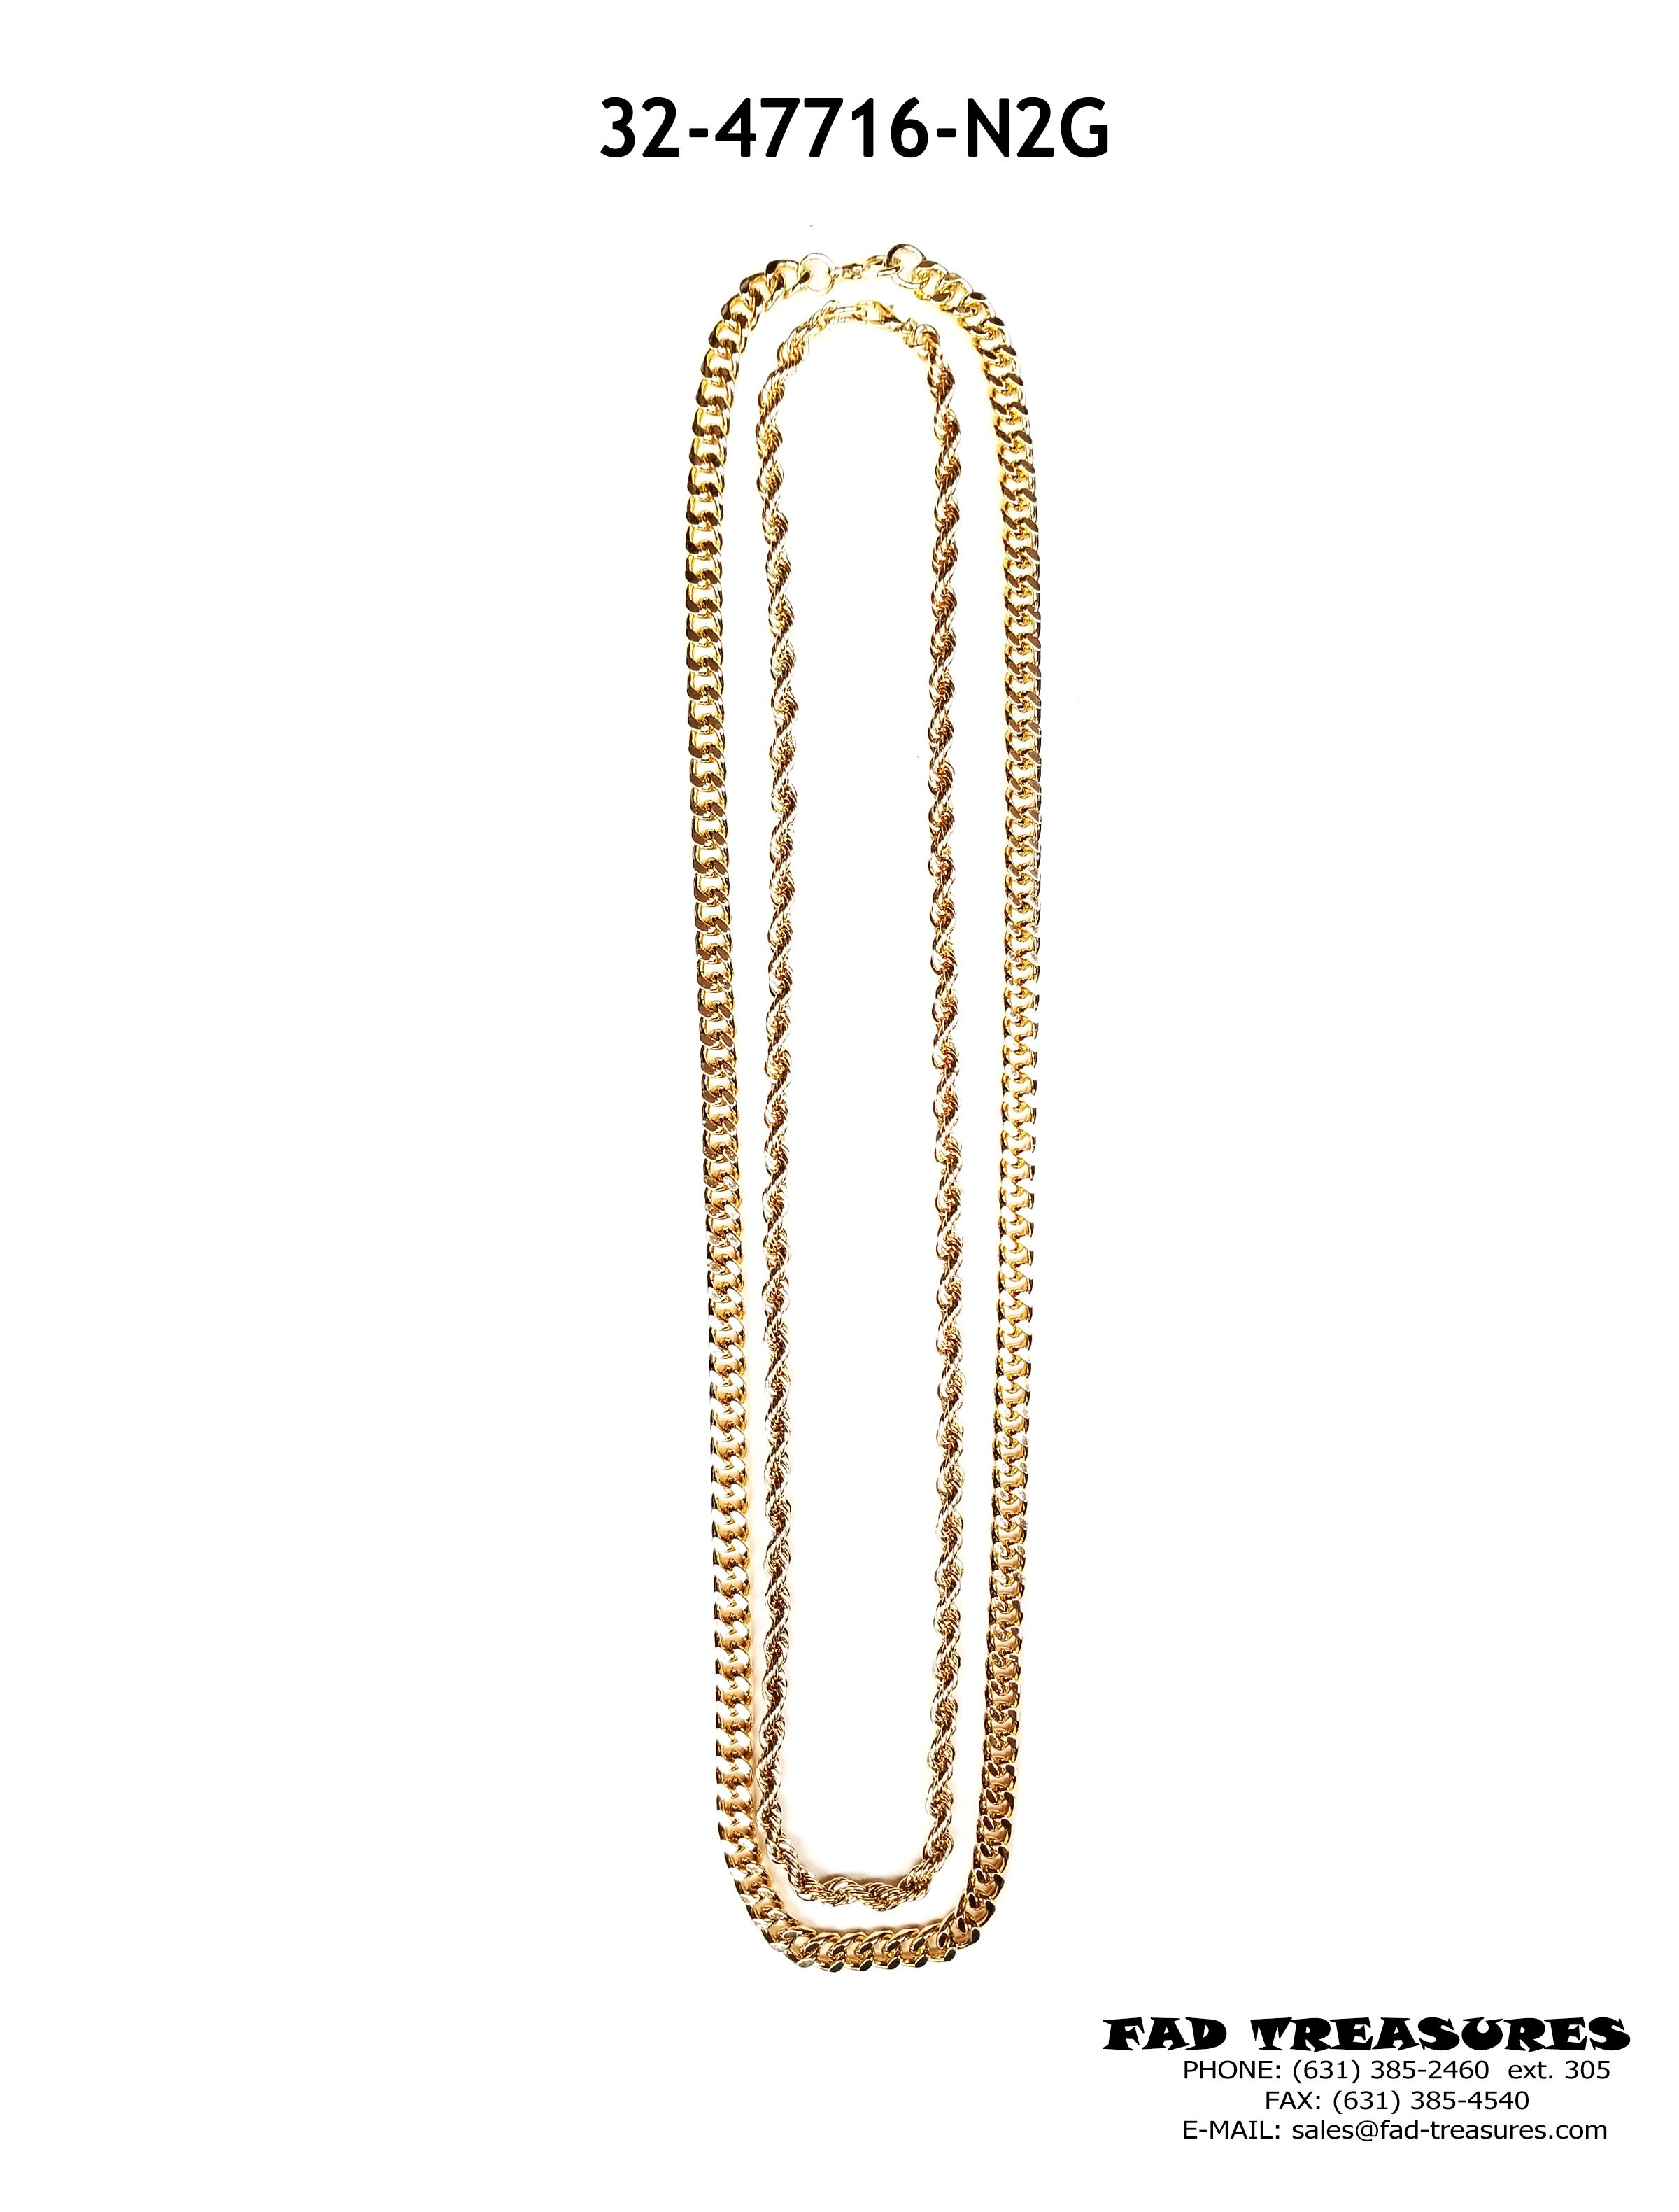 843b695fab63d Gold 2 Row Chain Necklace - Chains - Necklaces - Guys/Unisex